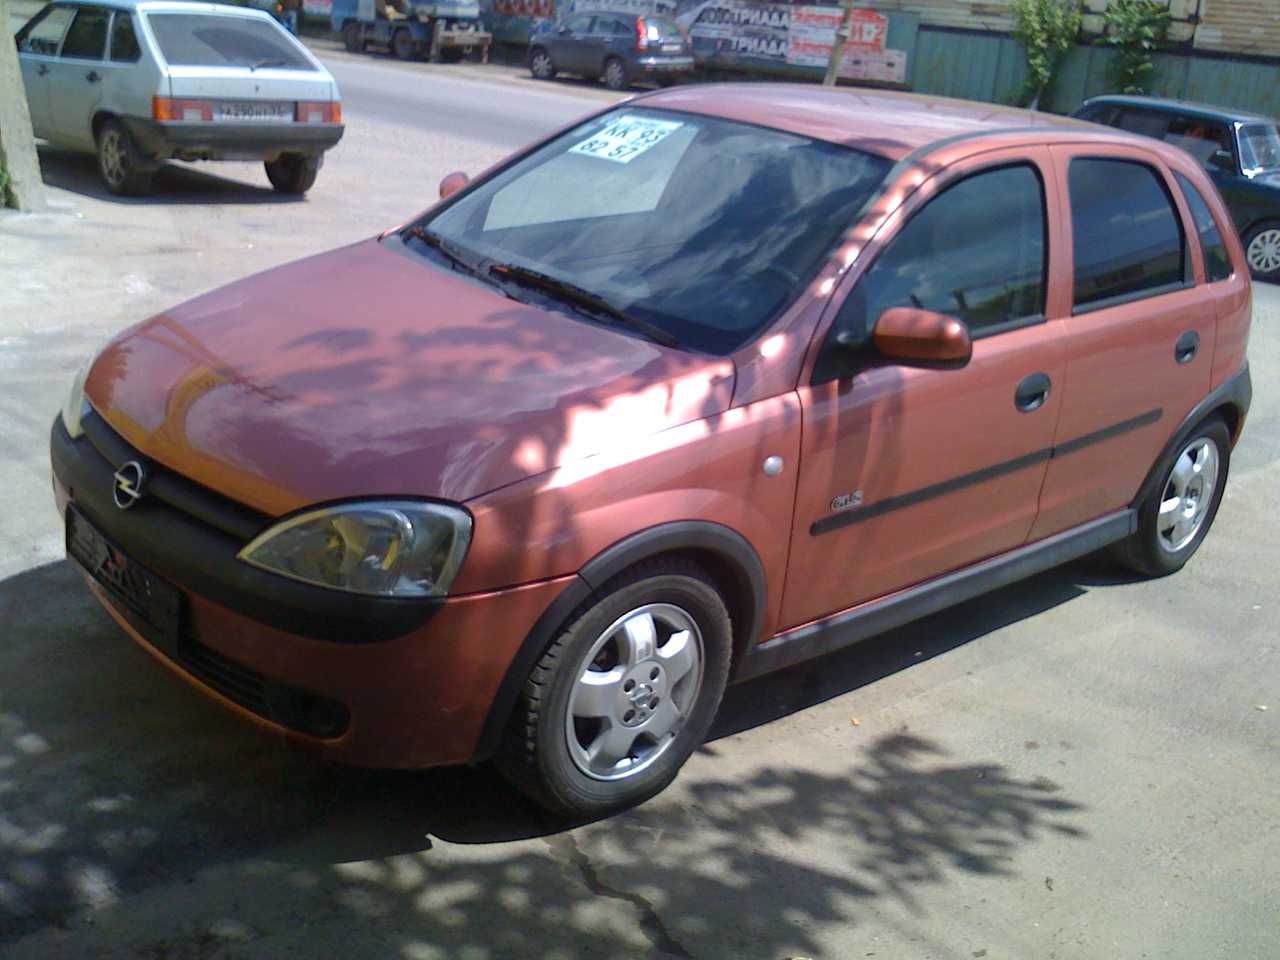 2001 opel corsa photos 1 4 gasoline ff automatic for sale. Black Bedroom Furniture Sets. Home Design Ideas